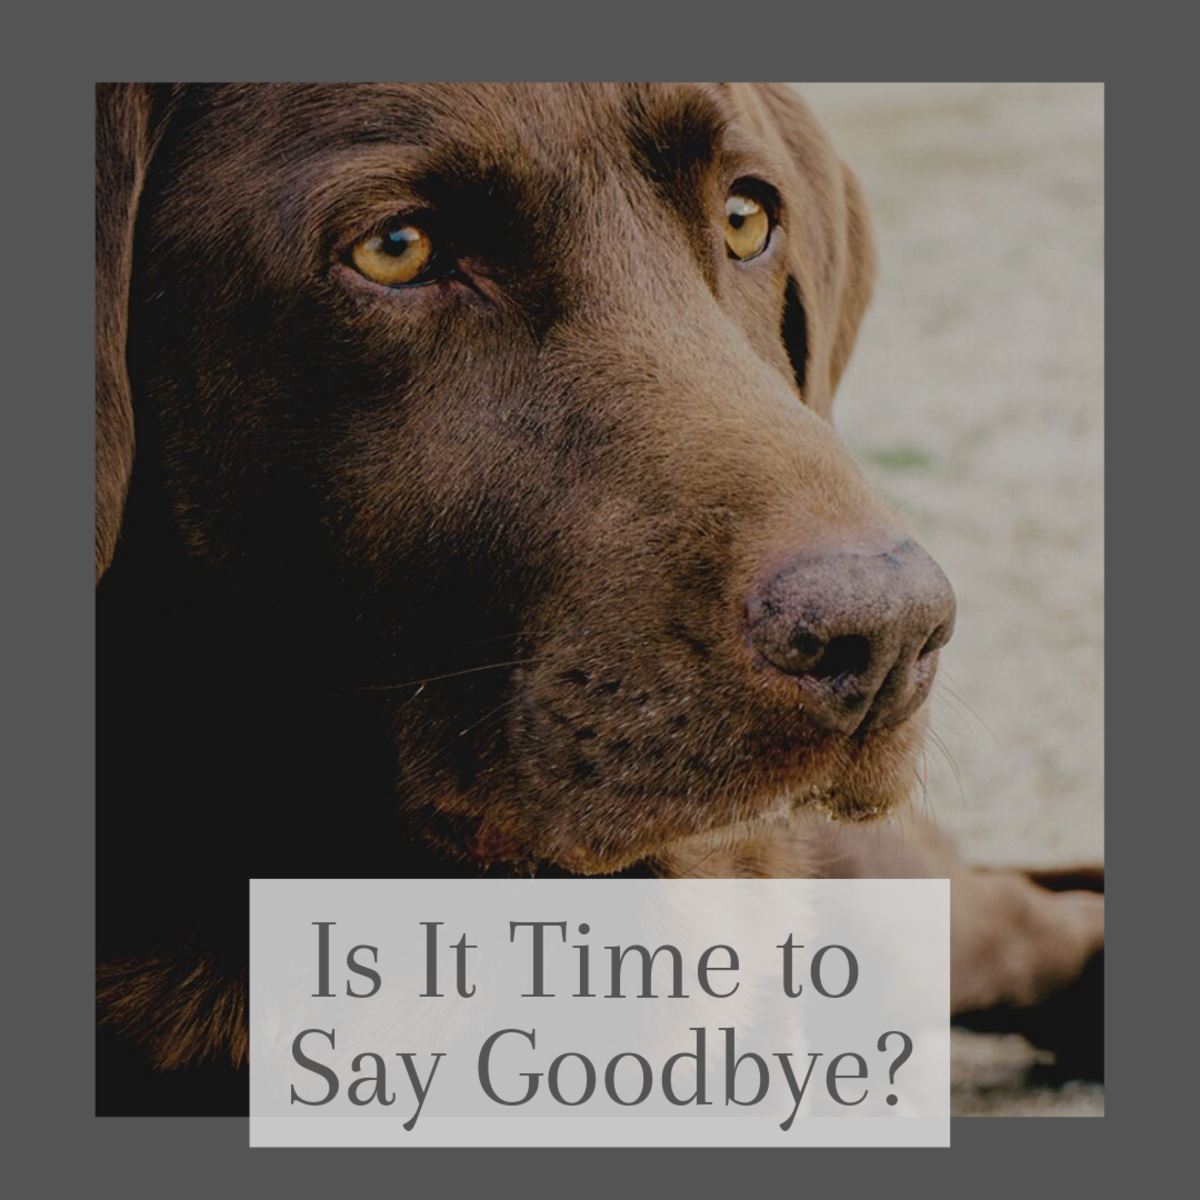 How Do I Know If It Is Time to Euthanize My Dog? An Interview With a Veterinarian